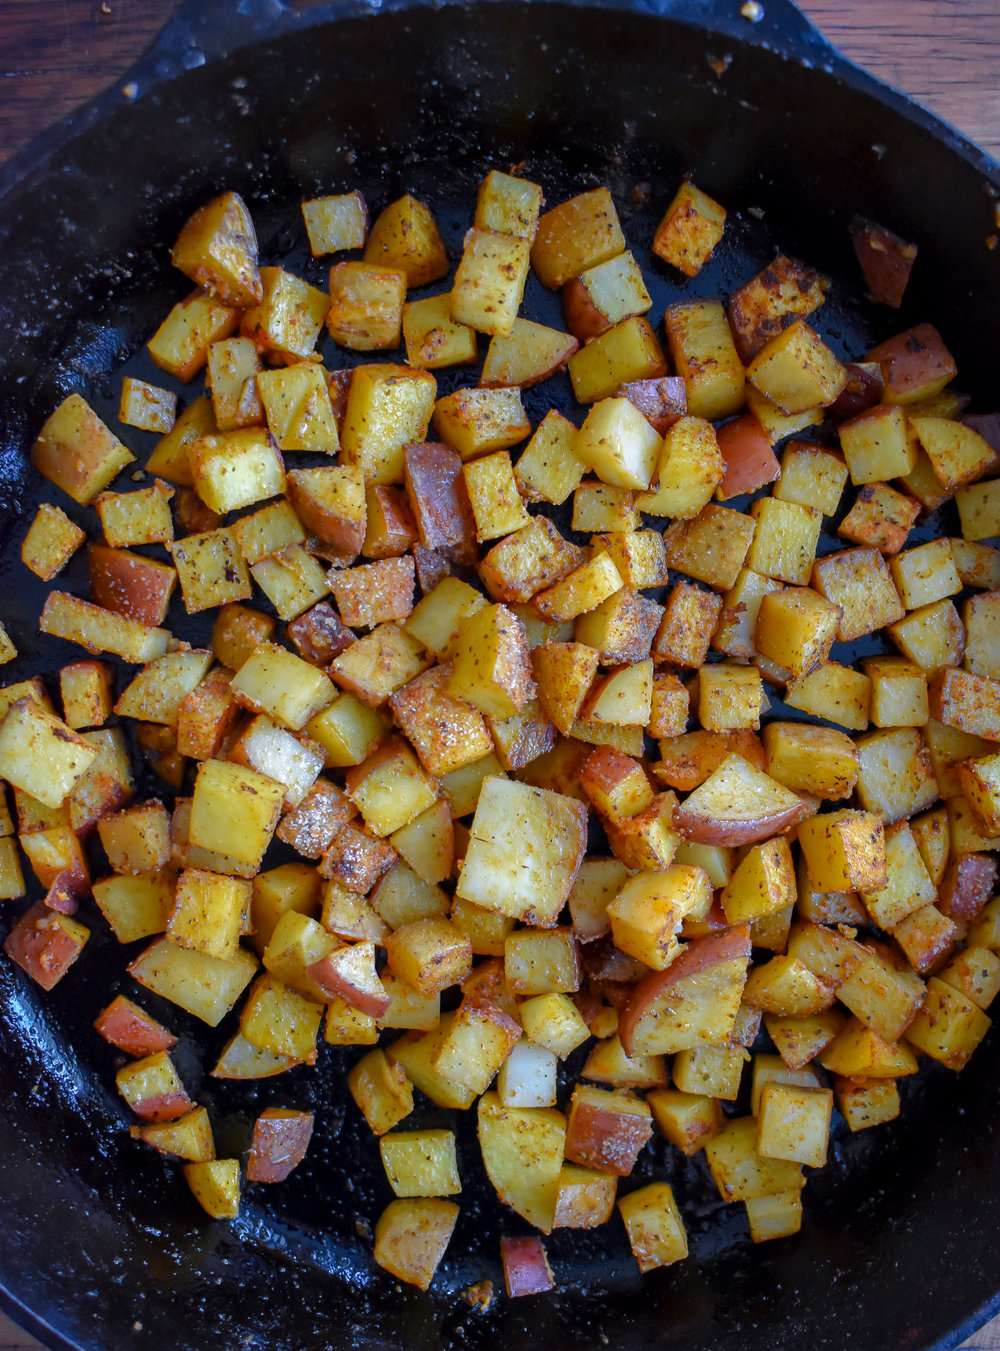 3. Add potatoes to a castiron pan with vegan butter + spices and cook over medium heat for 7-8 minutes until a nice sear forms. Set aside.